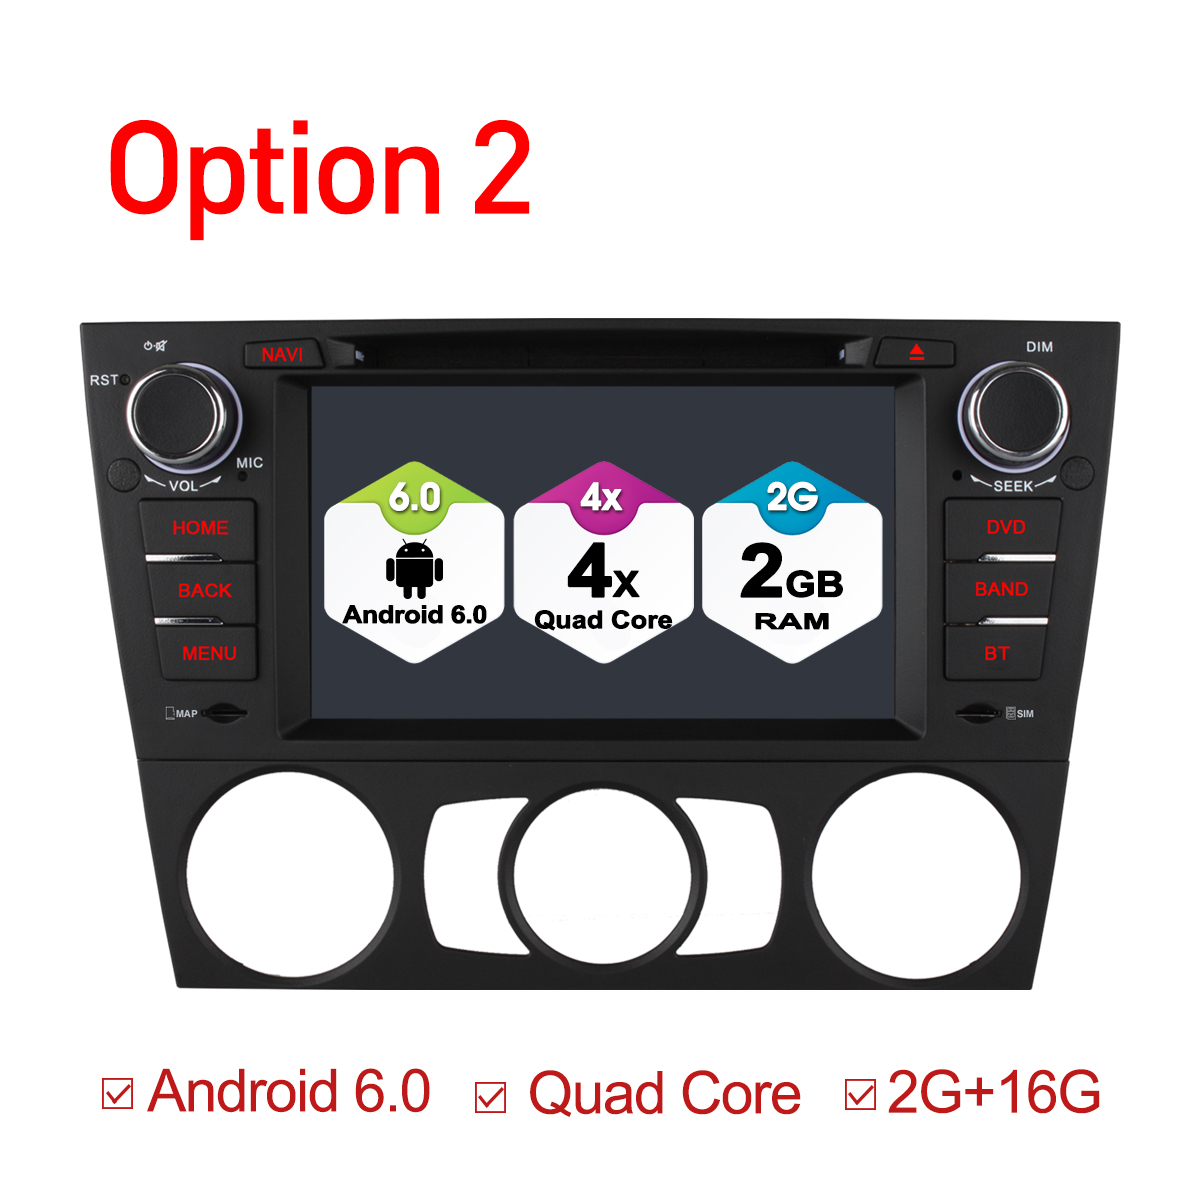 Ownice C500 32G ROM voiture DVD GPS Octa Core Android 6.0 pour E90 E91 E92 E93 lecteur autoradio 2GB RAM 16GB ROM Support wifi 4G DAB +